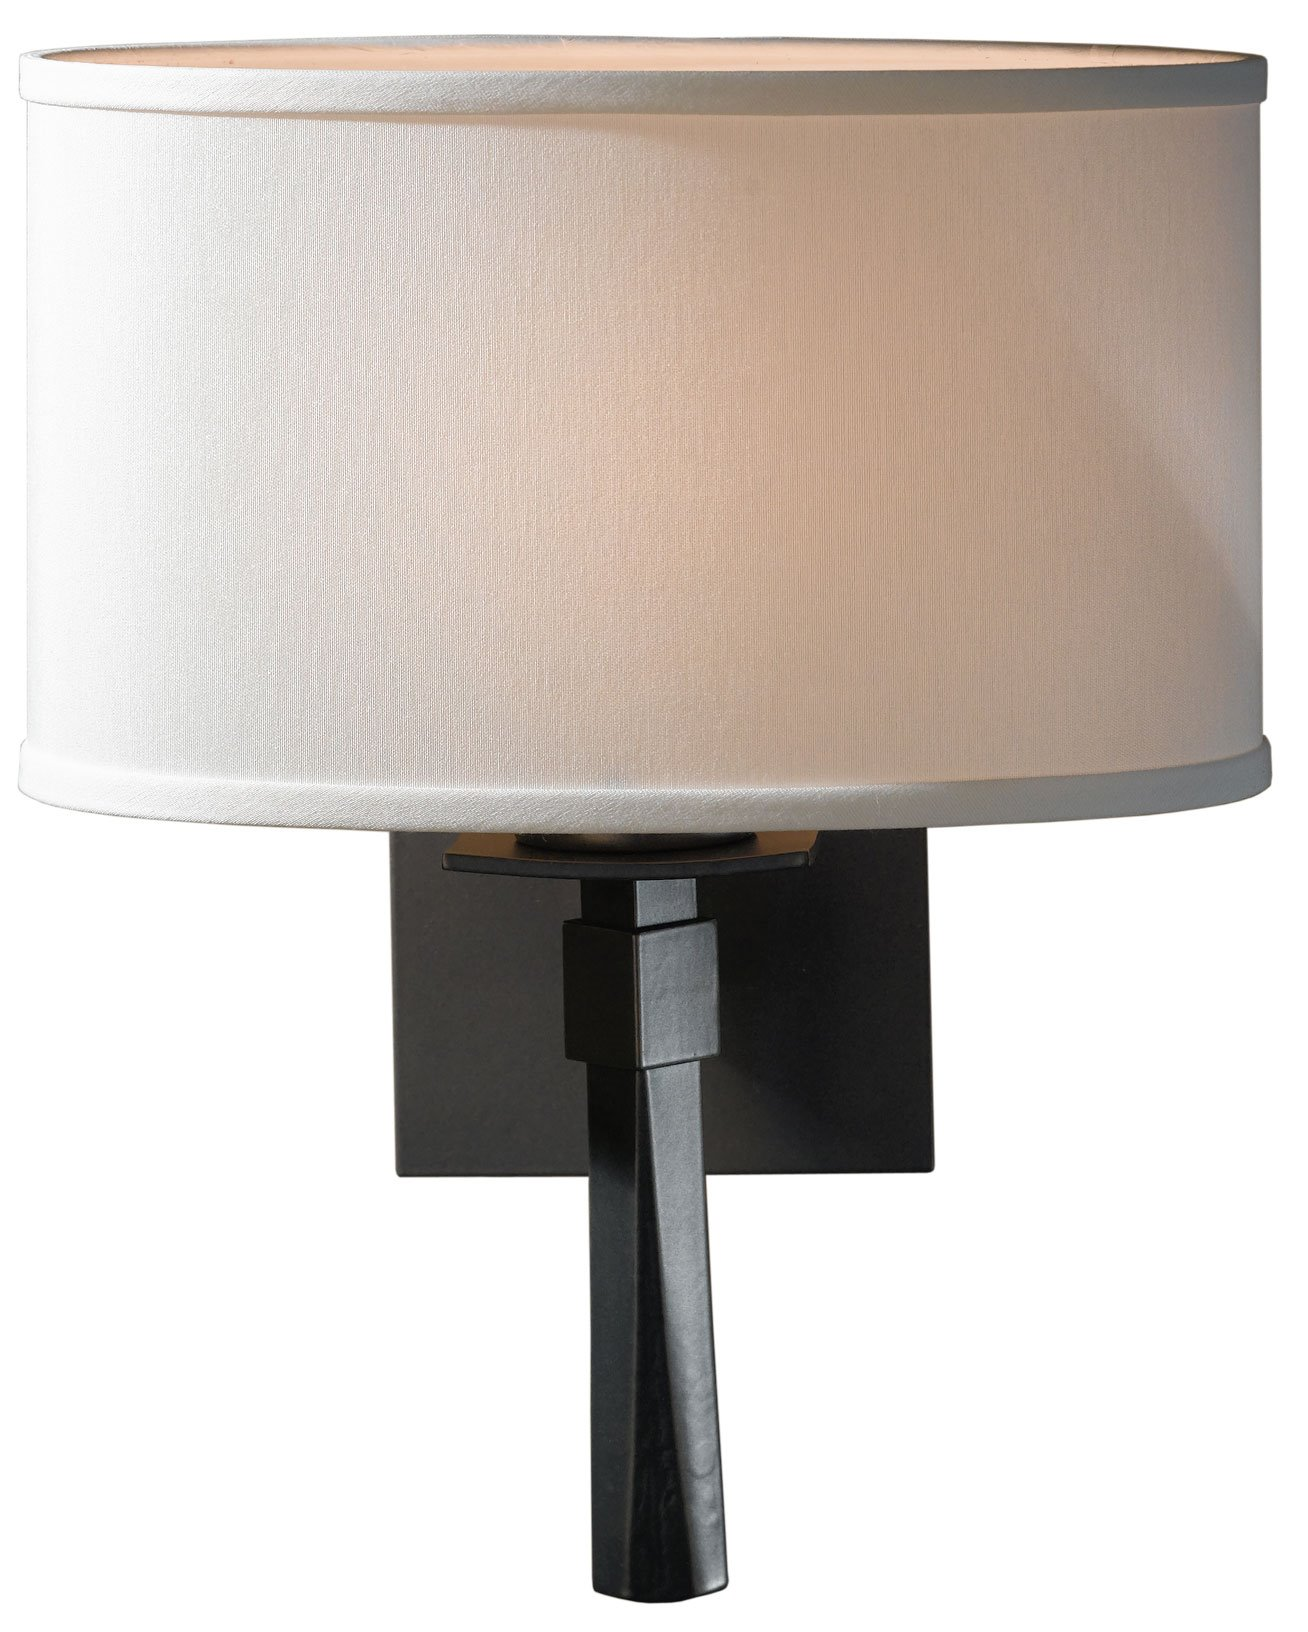 official photos 2fff0 0c4f4 Hubbardton Forge Beacon Hall Transitional Wall Sconce - HF-204810 See  details.